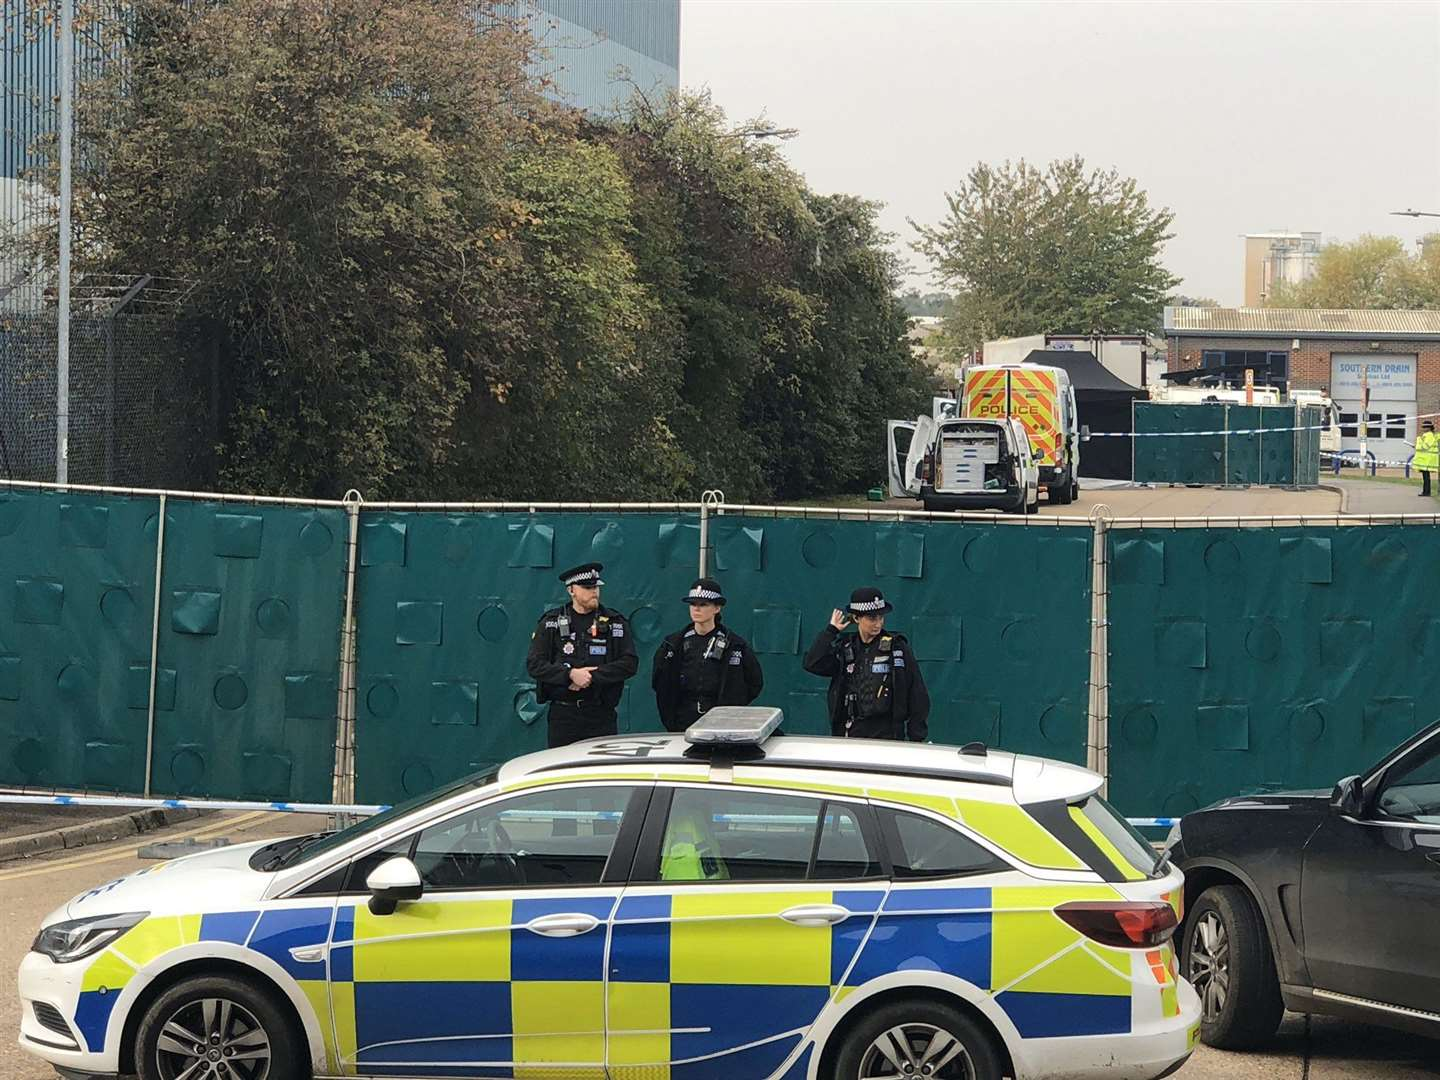 Police have launched a murder investigation. Picture: UKNIP